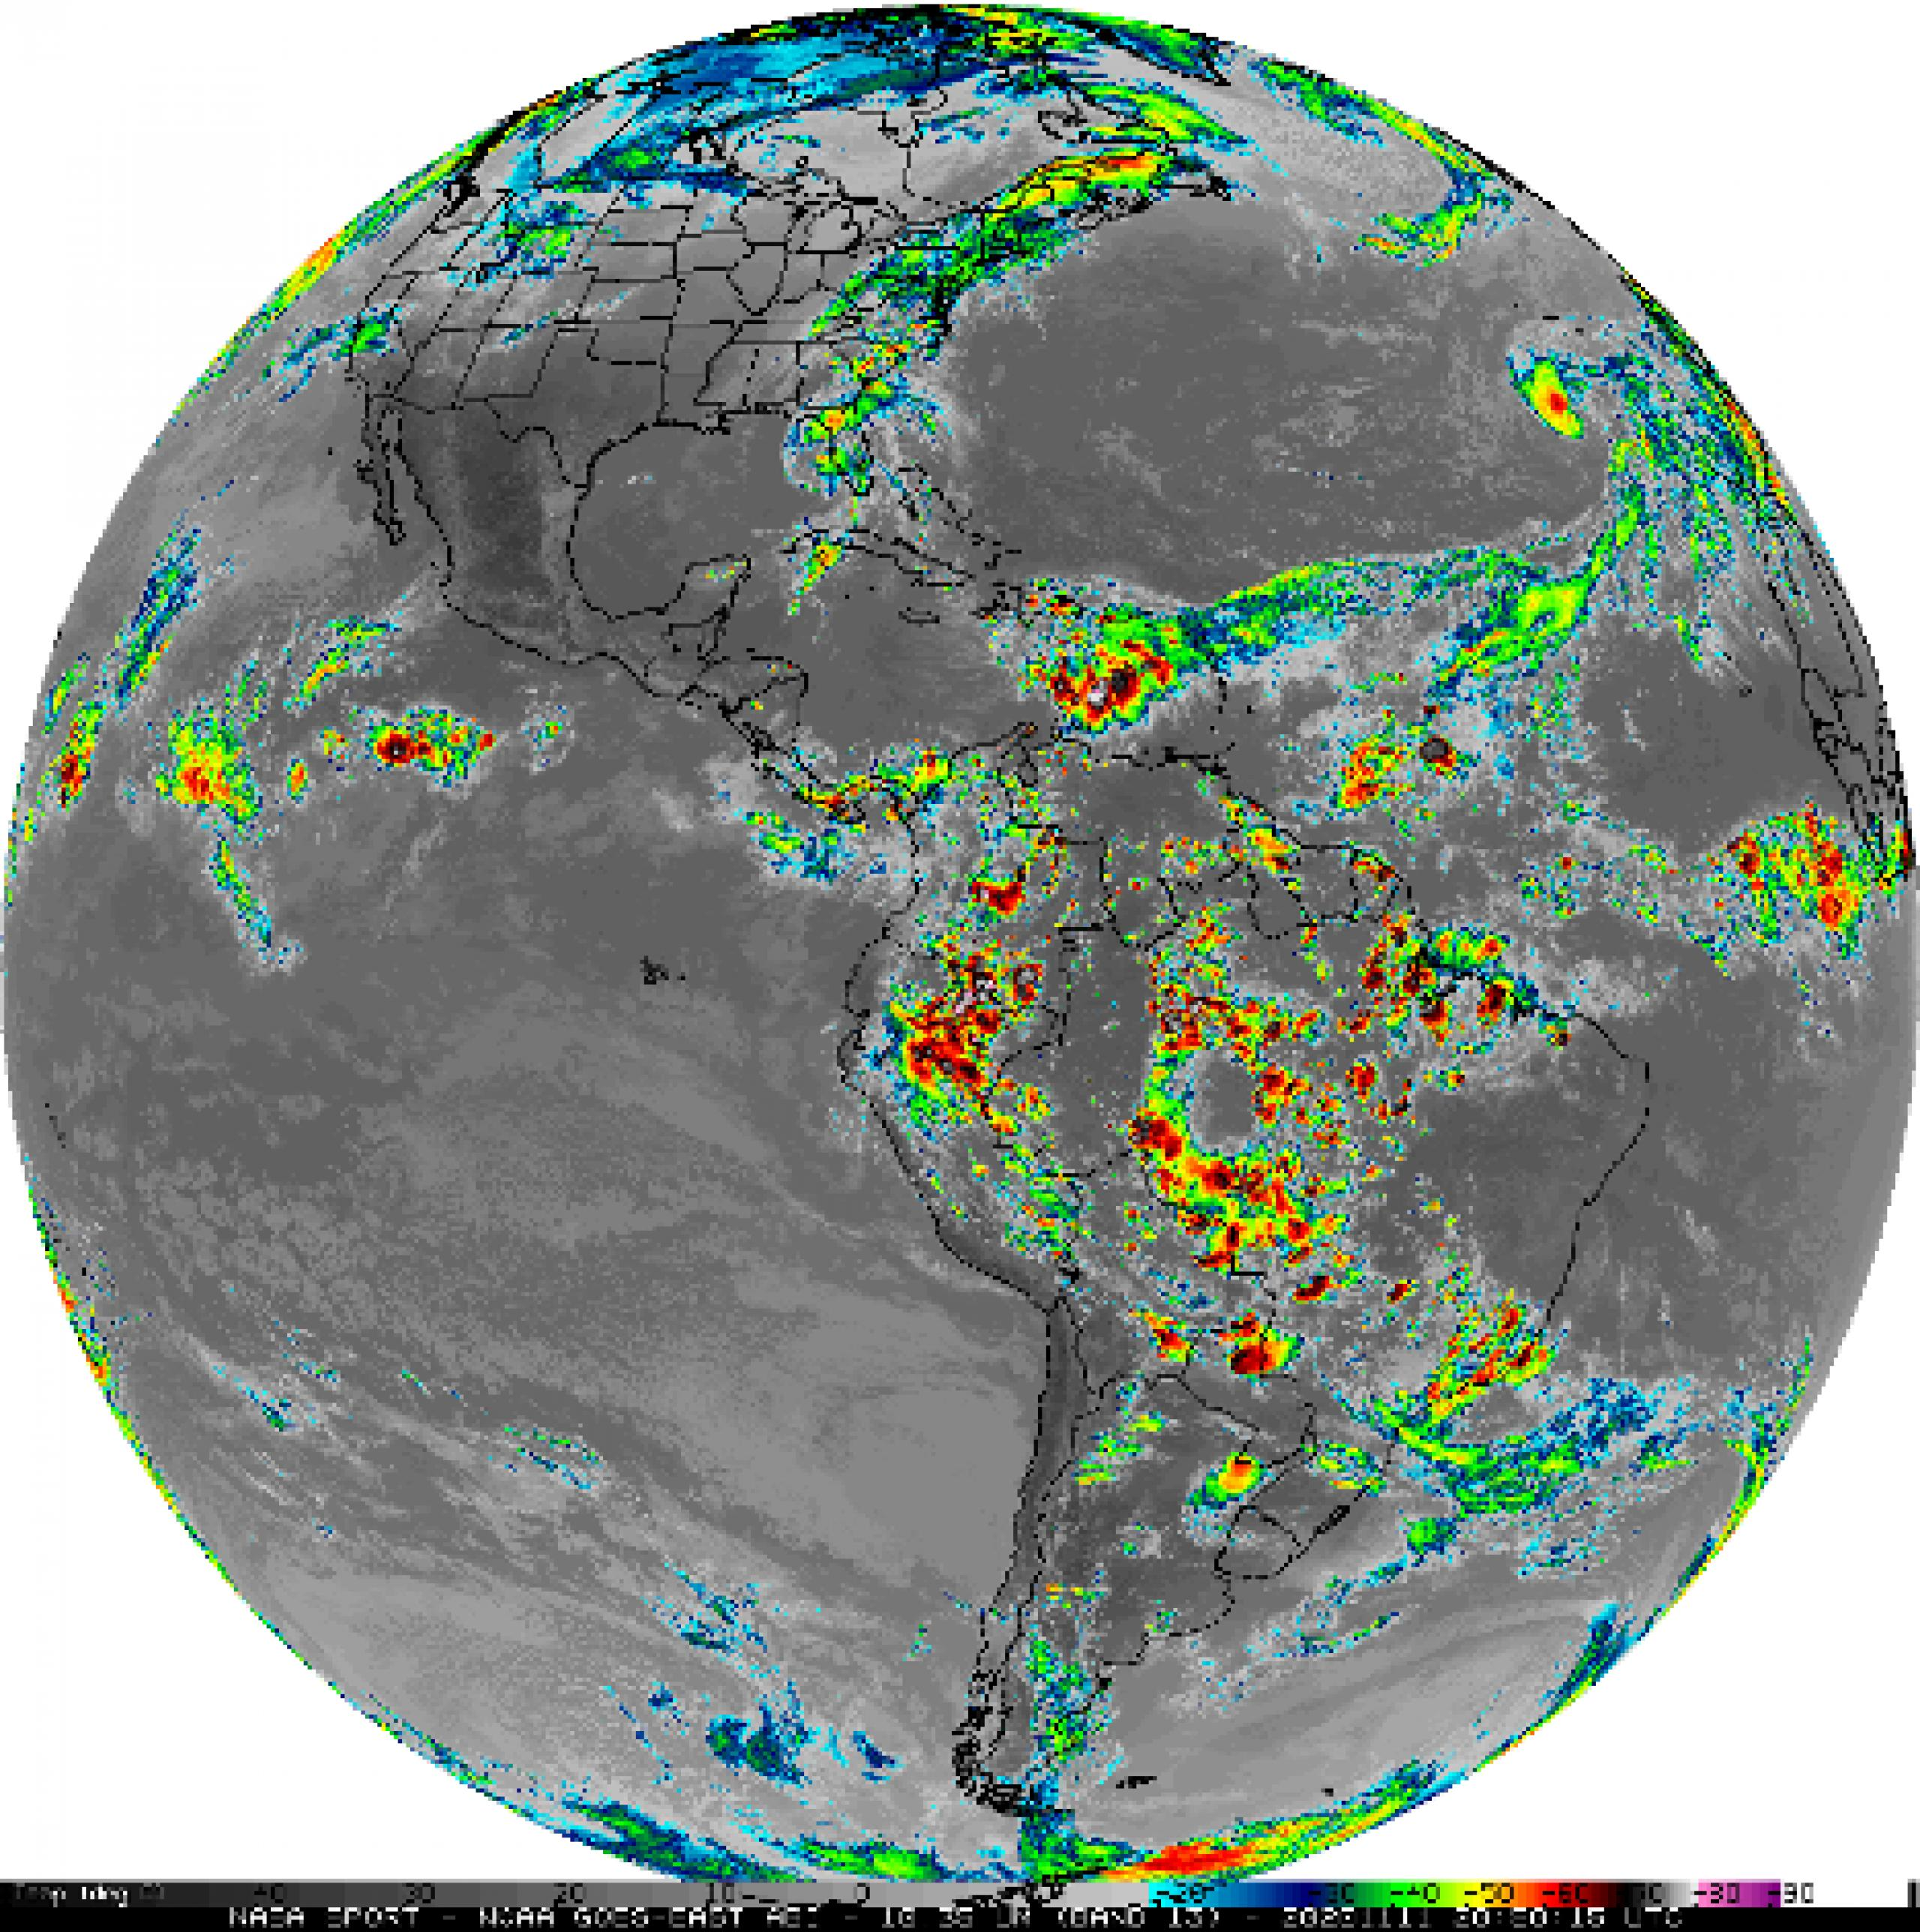 color coded weather data overlaying world map